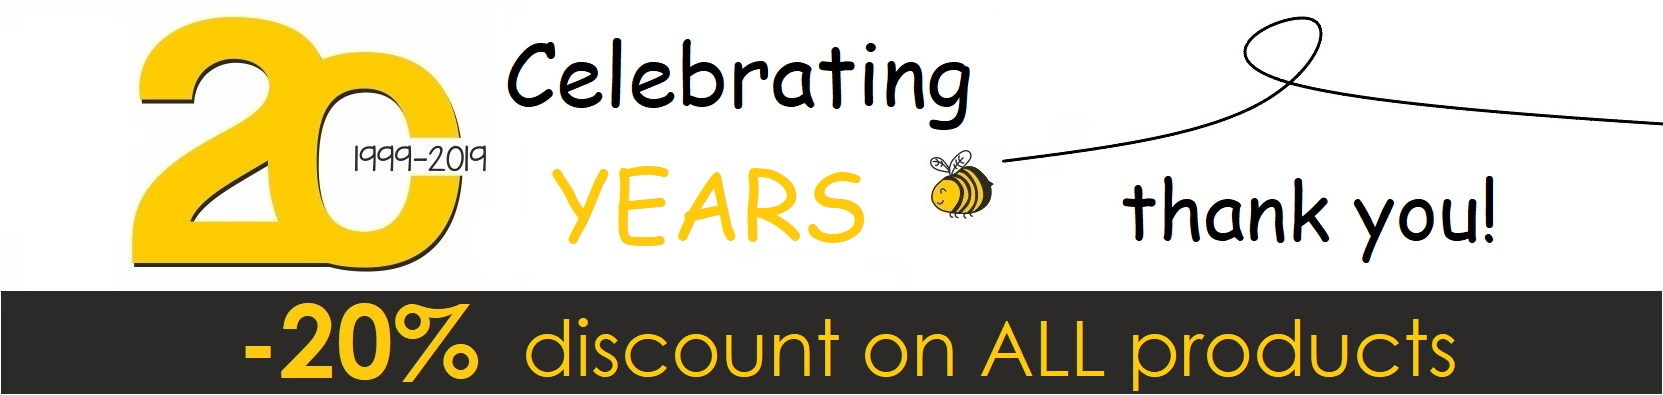 20 YEARS 20 DISCOUNT HONEY PRODUCTS